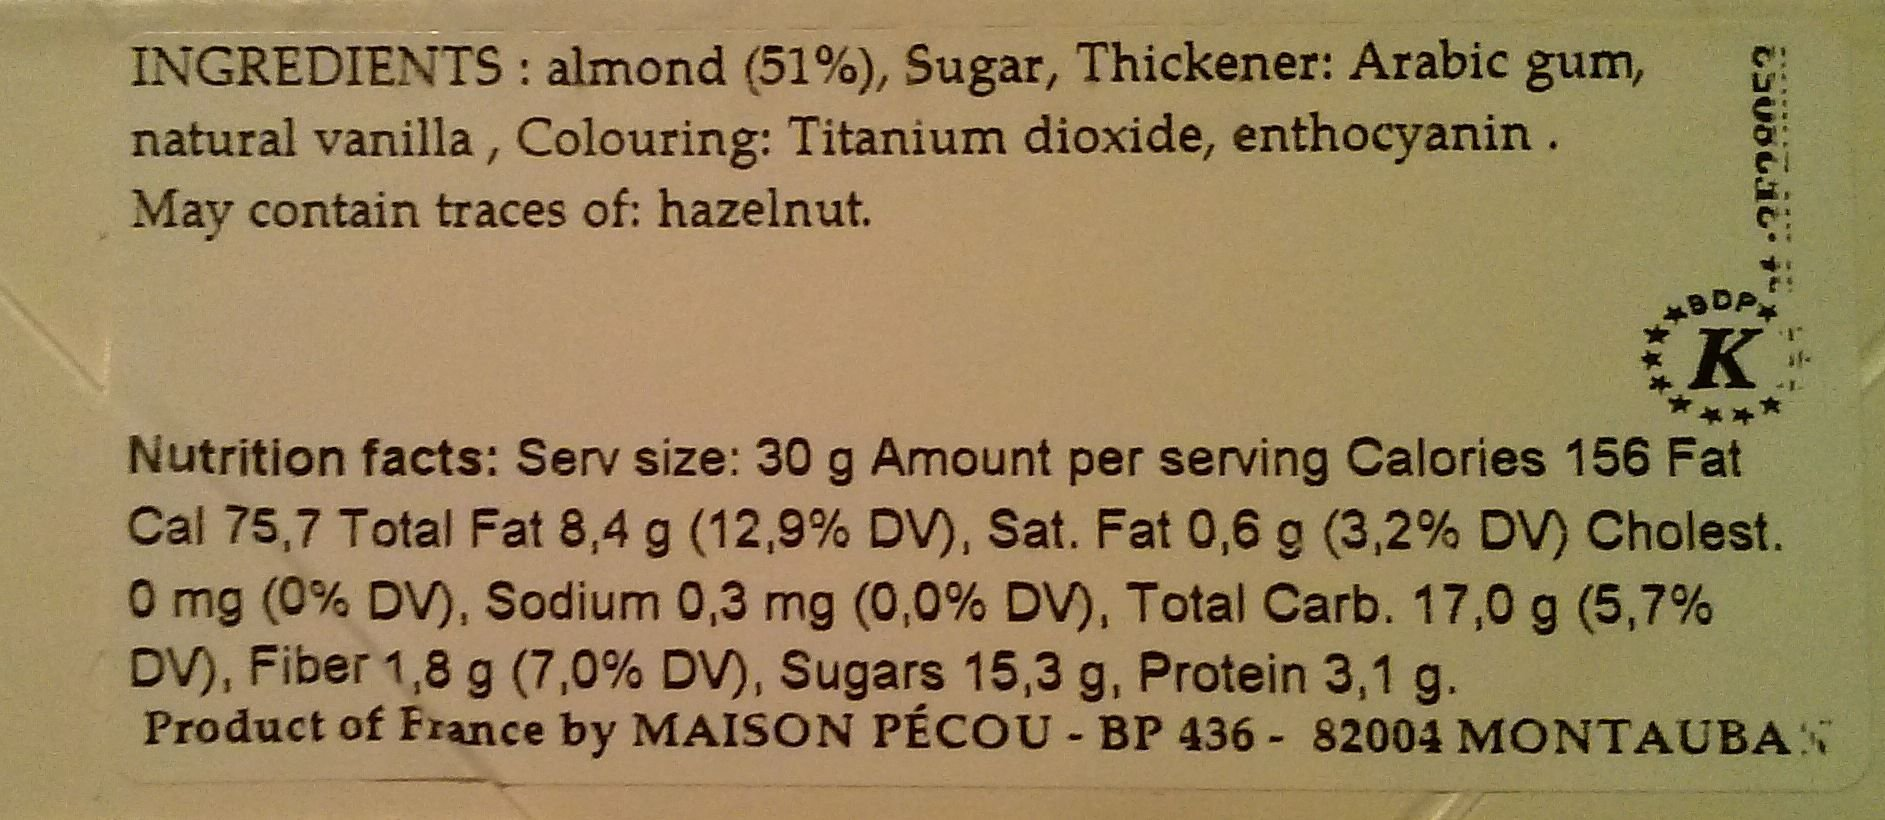 French Avola Almond Dragees (French Jordan Almonds), White color 1kg (2.2lbs) by Dragees Pecou (Image #2)